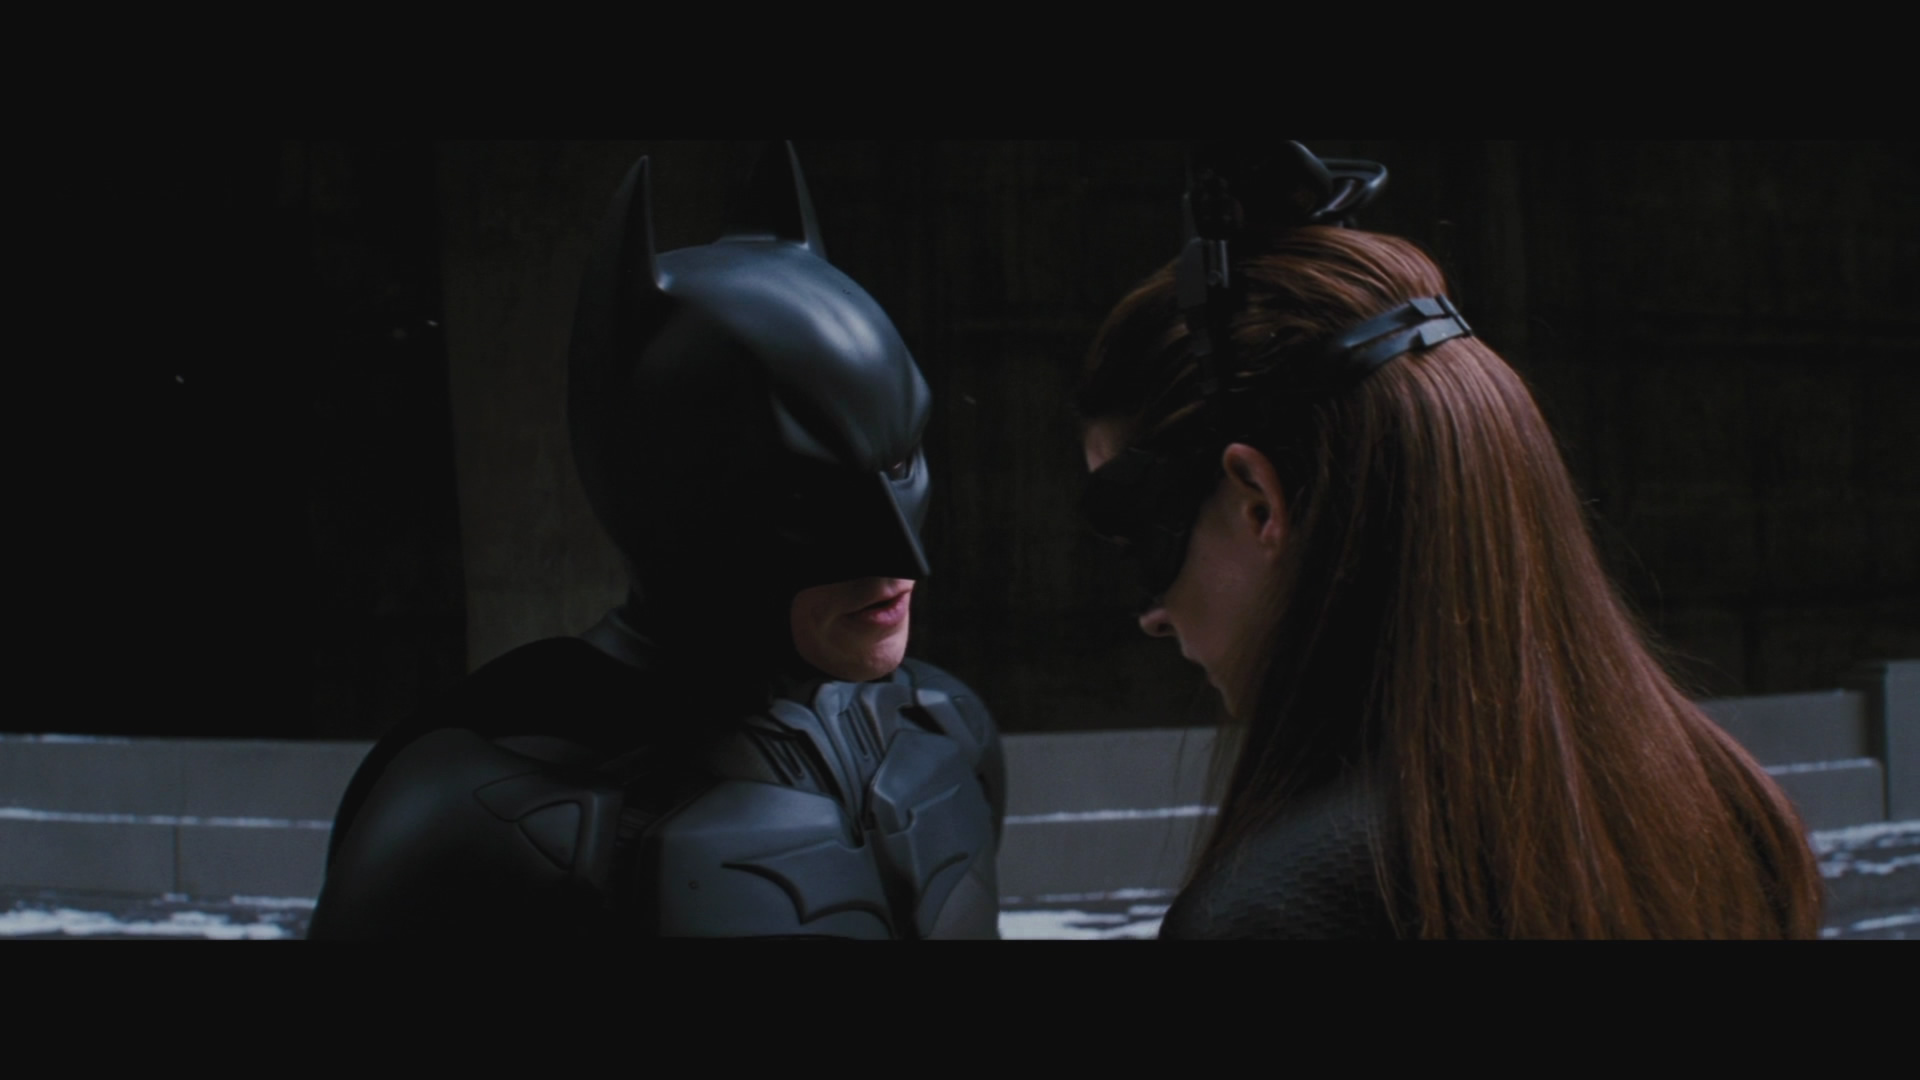 bruce wayne and selena kyle relationship help